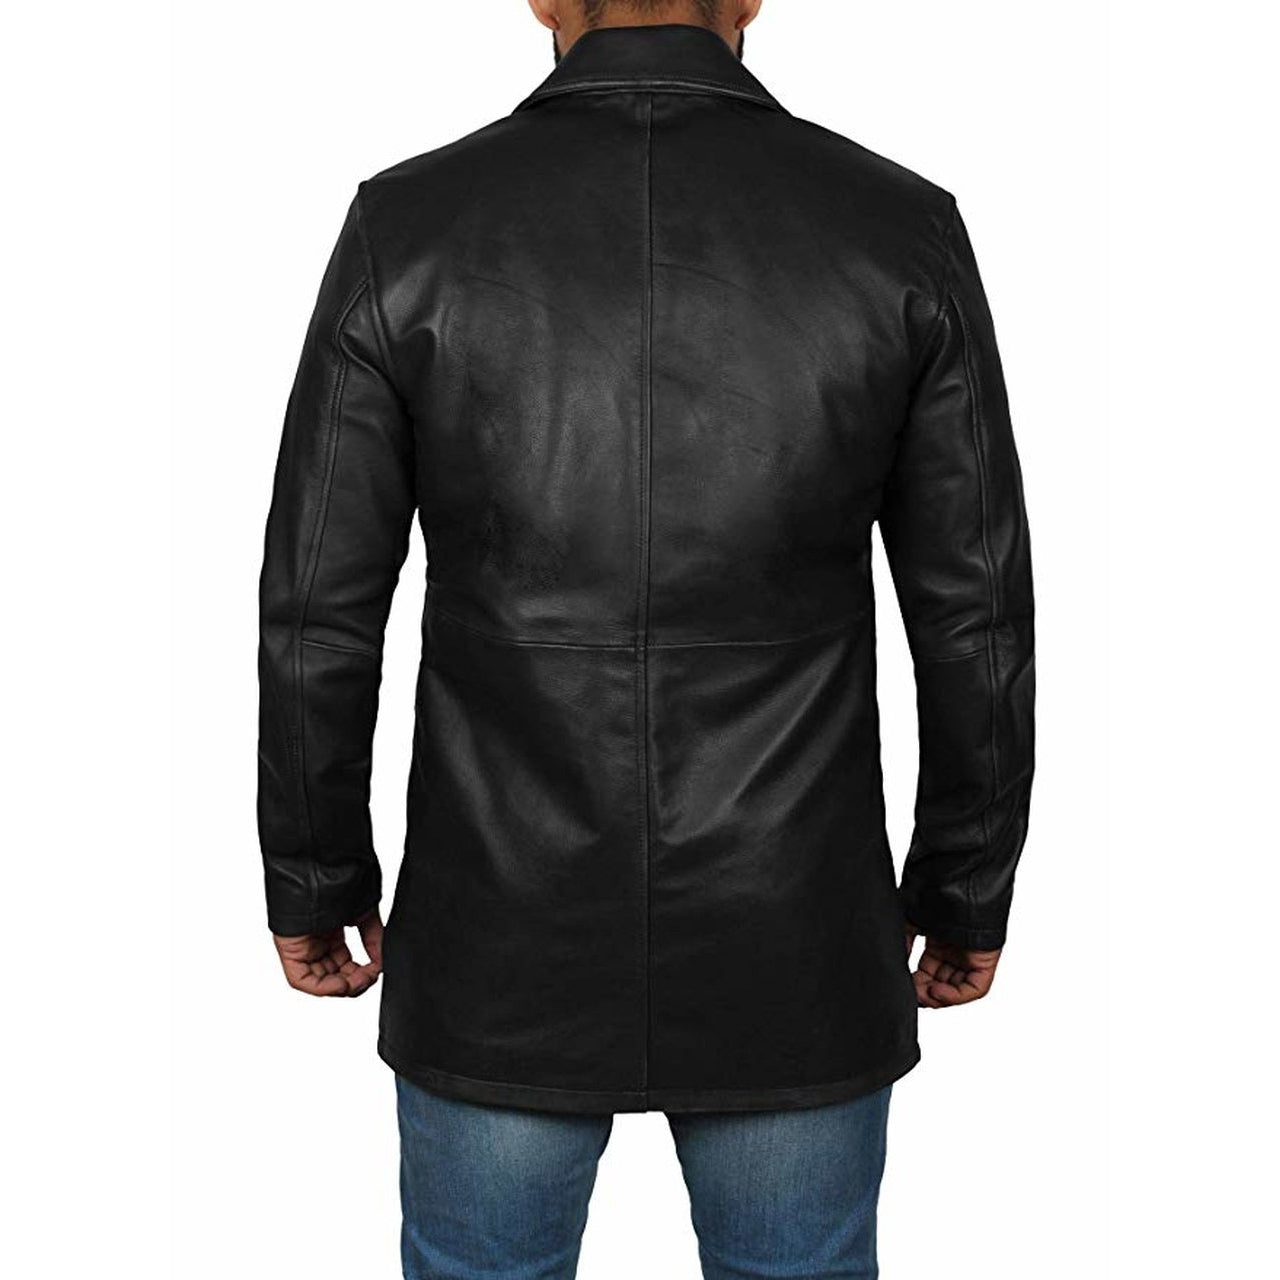 Coat Style Black Leather Jacket for Men - Leather Jacket